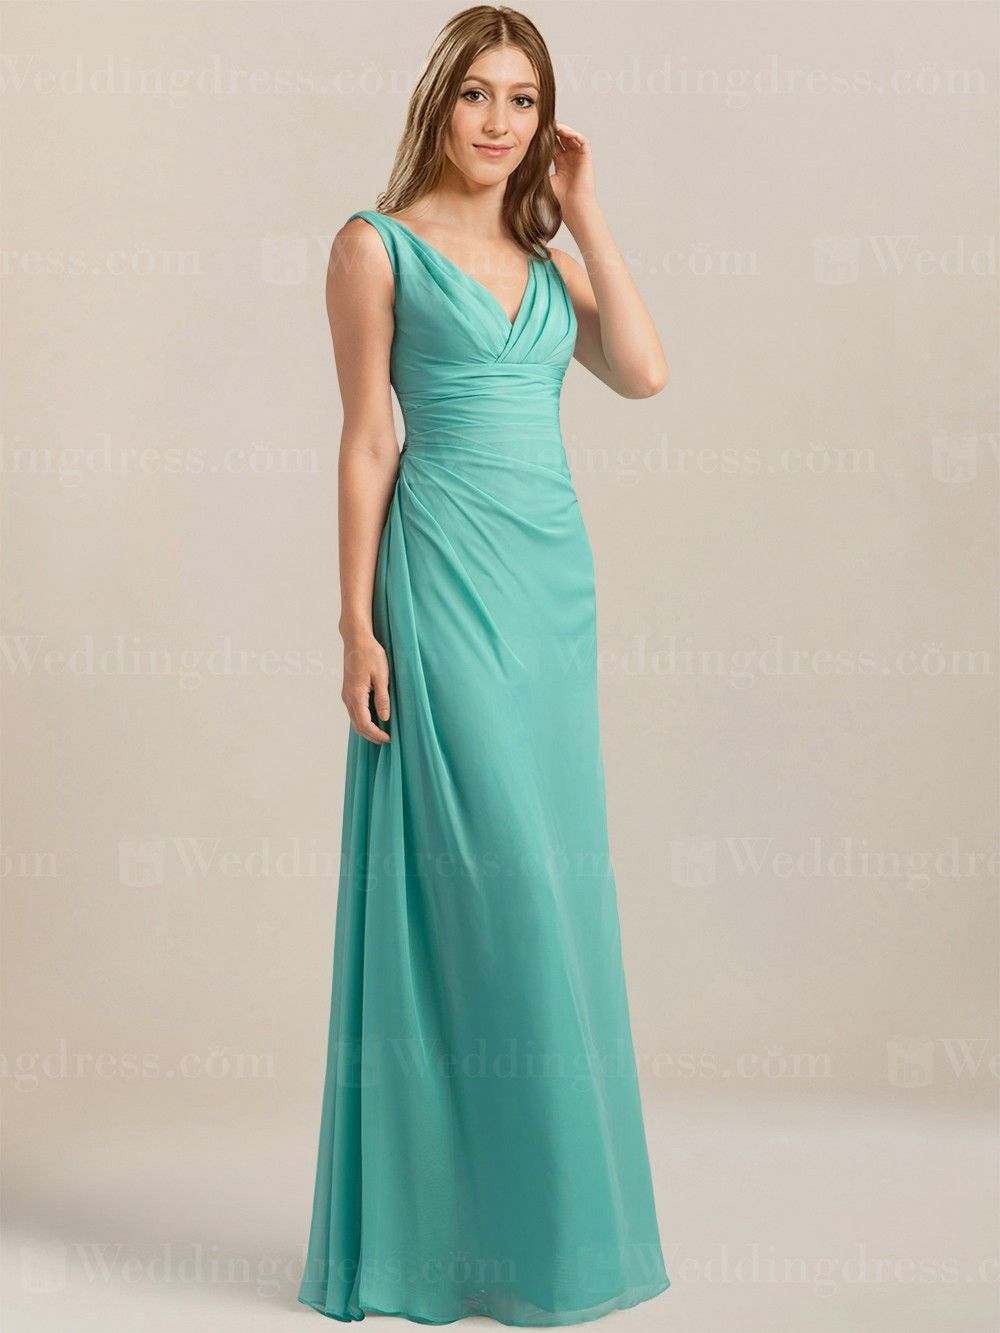 V-Neck Long Bridesmaid Dress BR617 | Long bridesmaid dresses ...